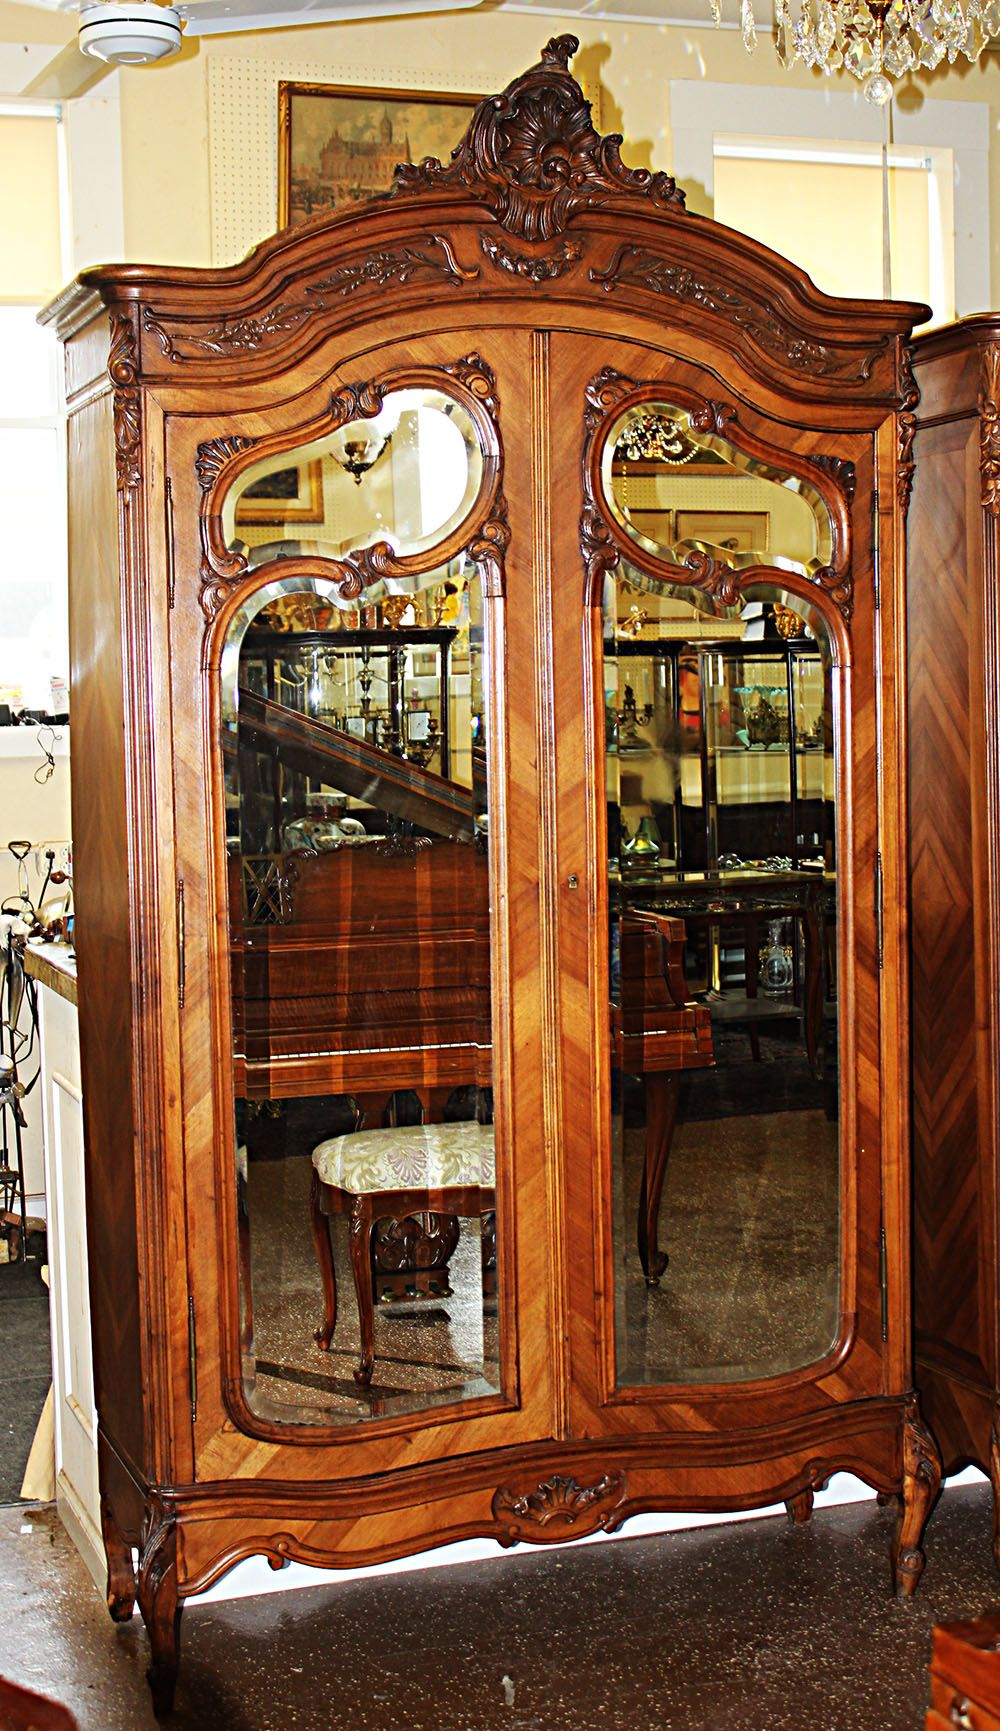 Furniture Antiques Louis Xv Style Vintage French Carved 5 Door Armoire Wardrobe Factory Direct Selling Price